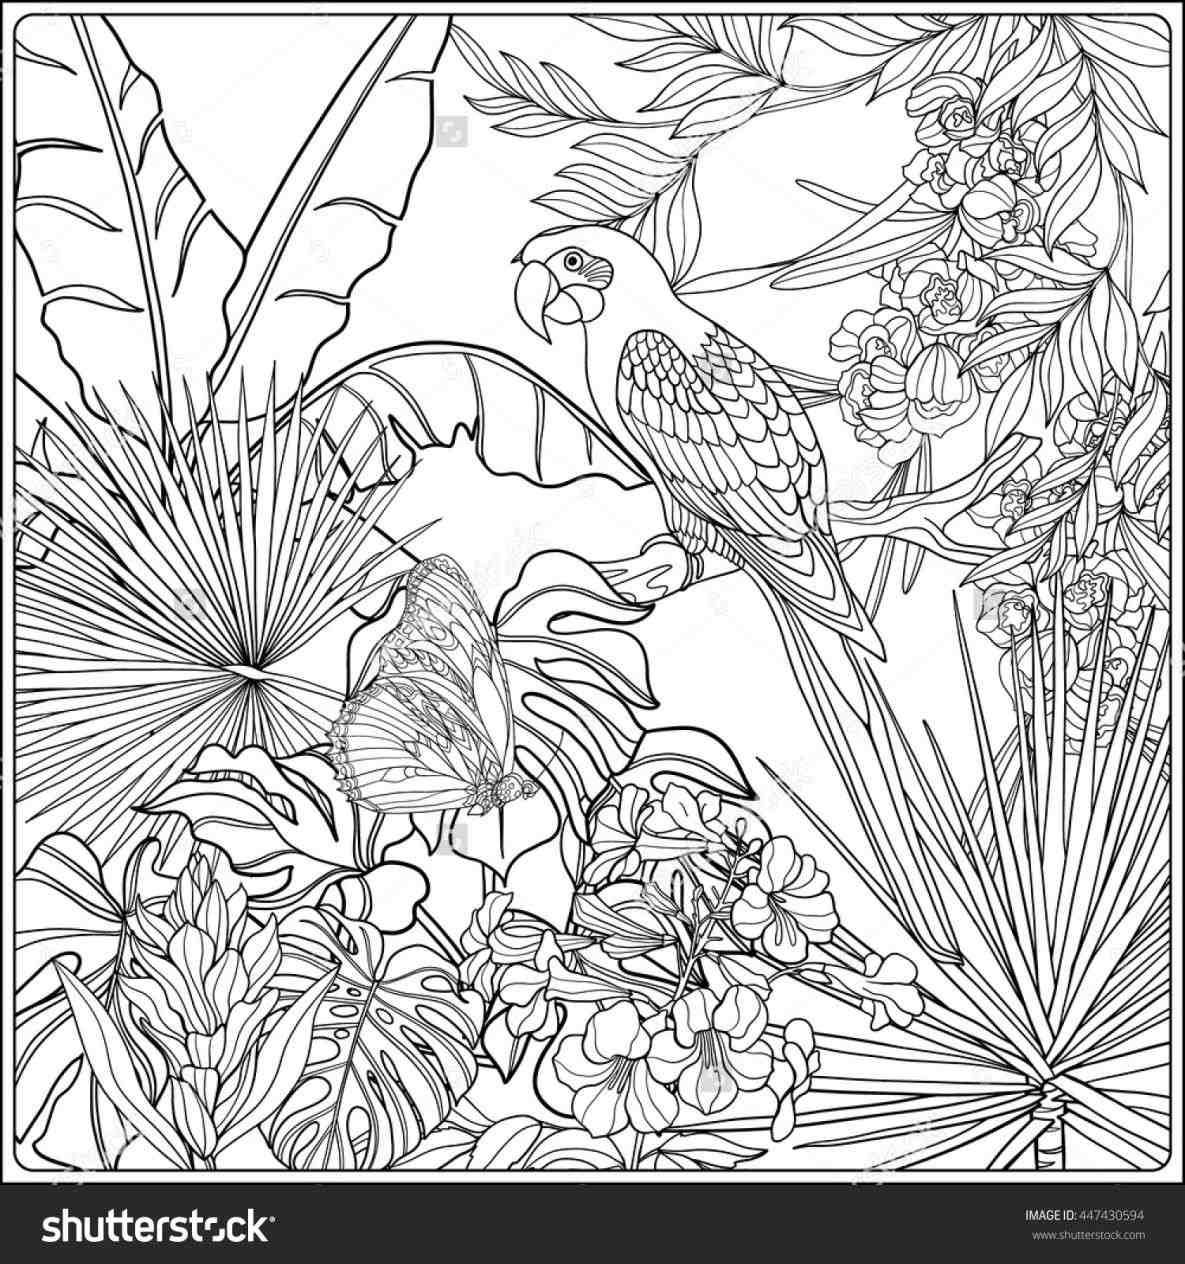 Printable Free Coloring Pages Jungle Adults Google Search Bird Coloring Pages Coloring Books Coloring Pages